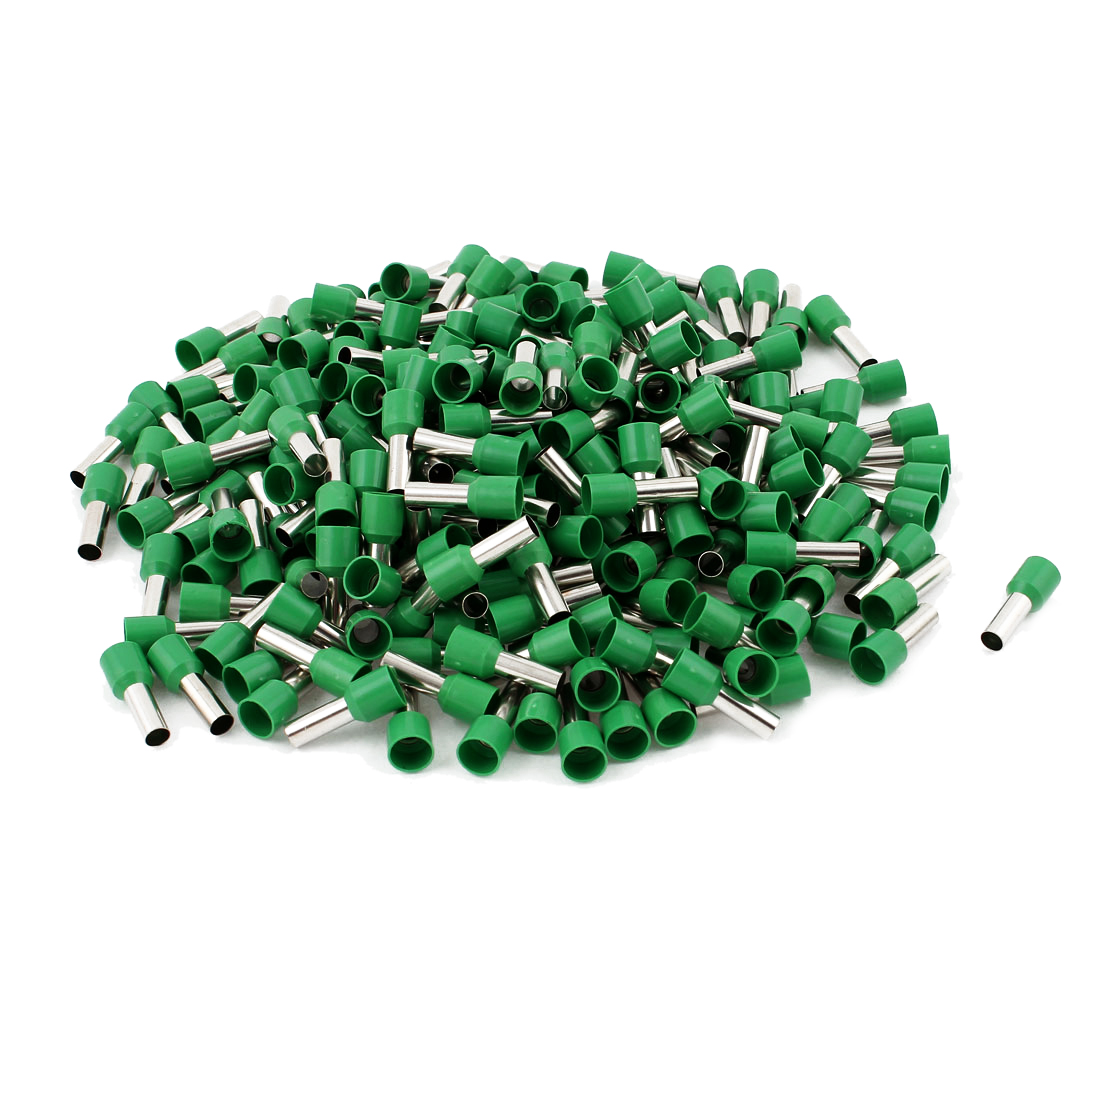 250pcs Green Wire Crimp Connector Insulated Ferrule Cord End Terminal AWG 8